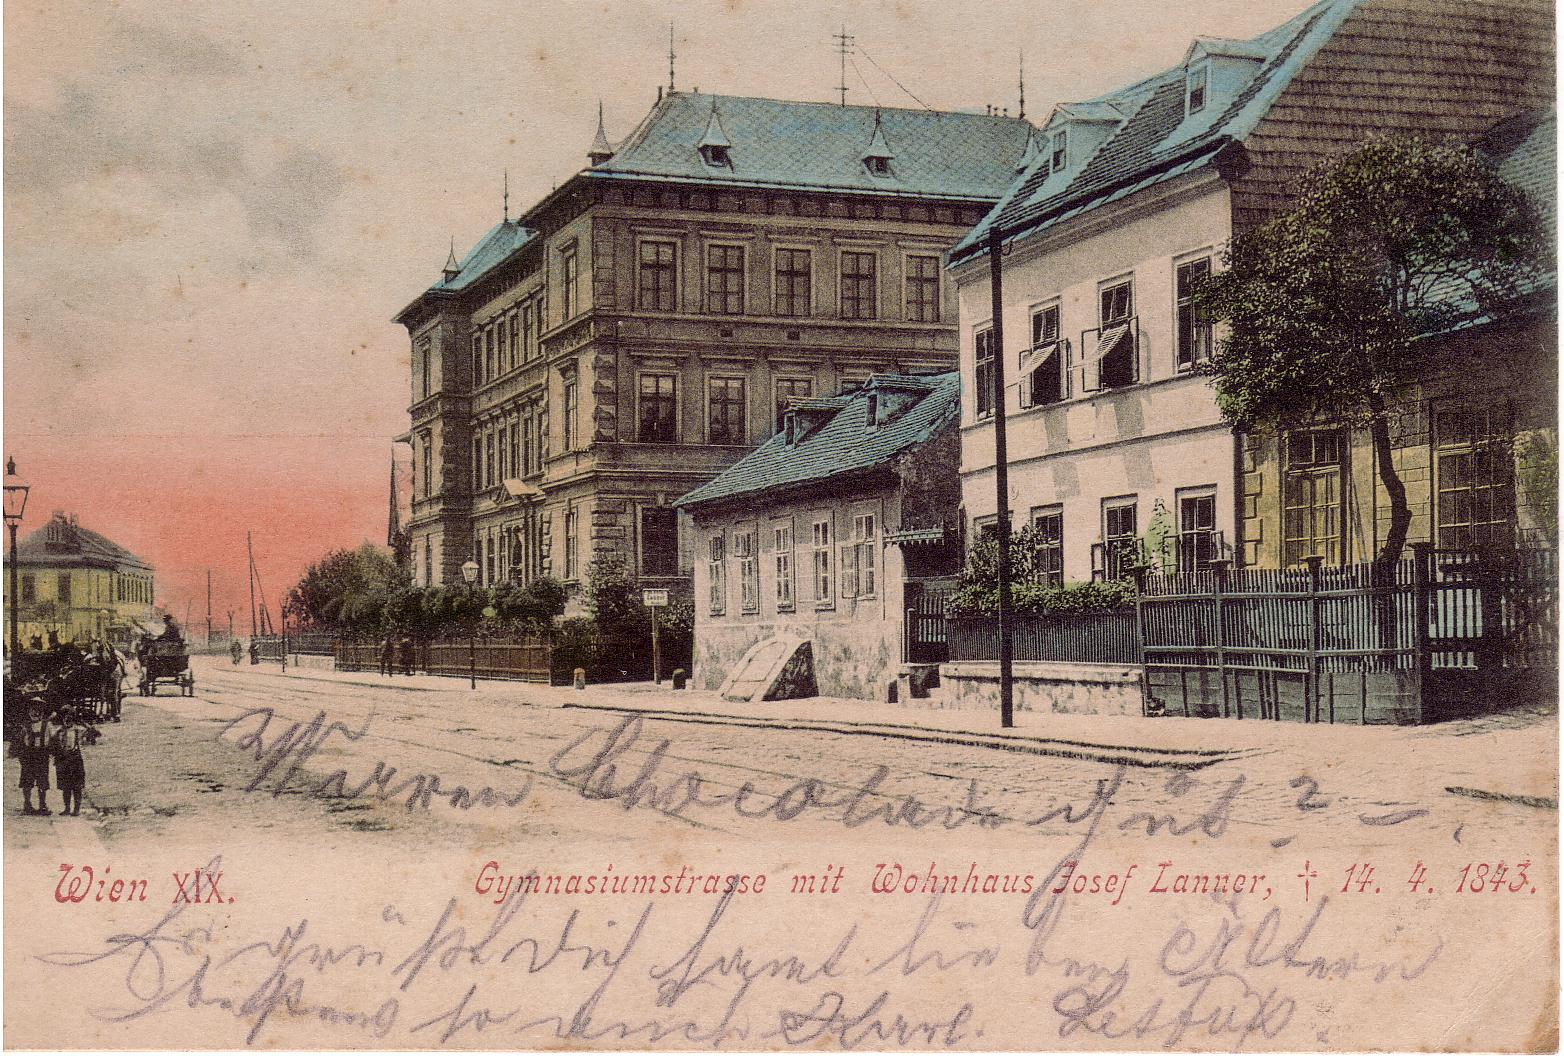 Gymnasiumstrasse 1900 Farbe